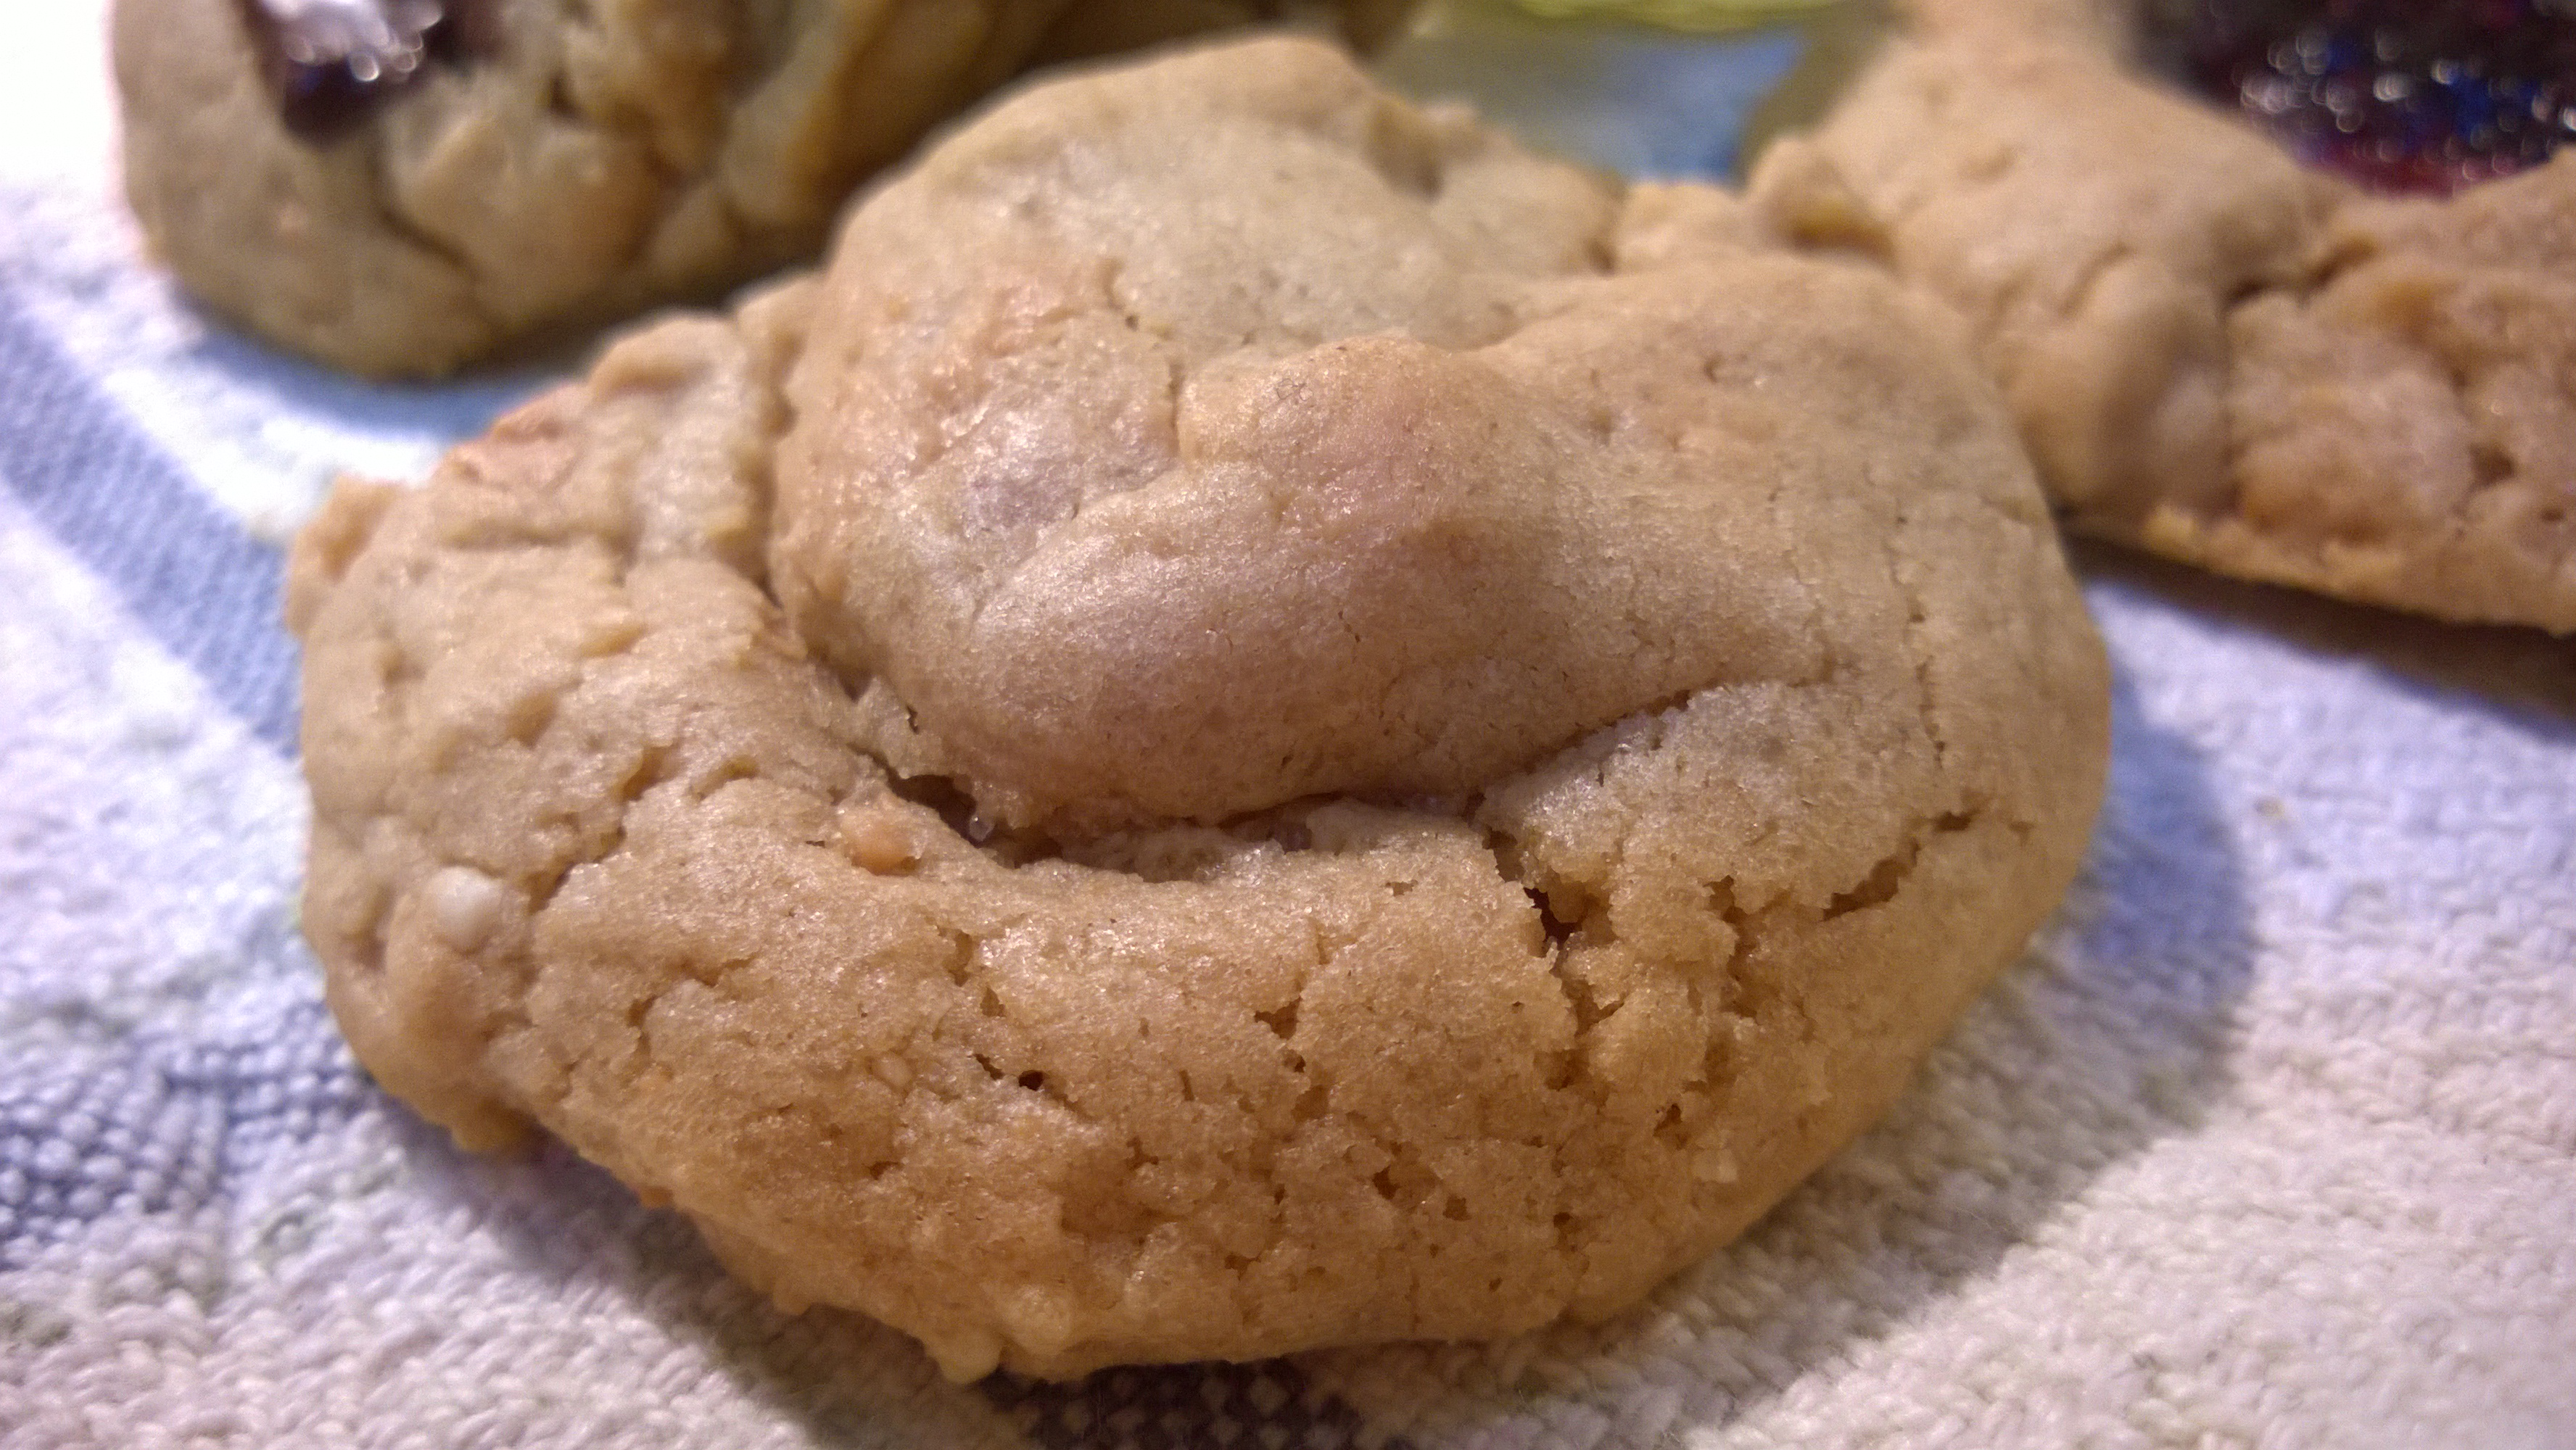 how to make weed penut butter cookies without eggs